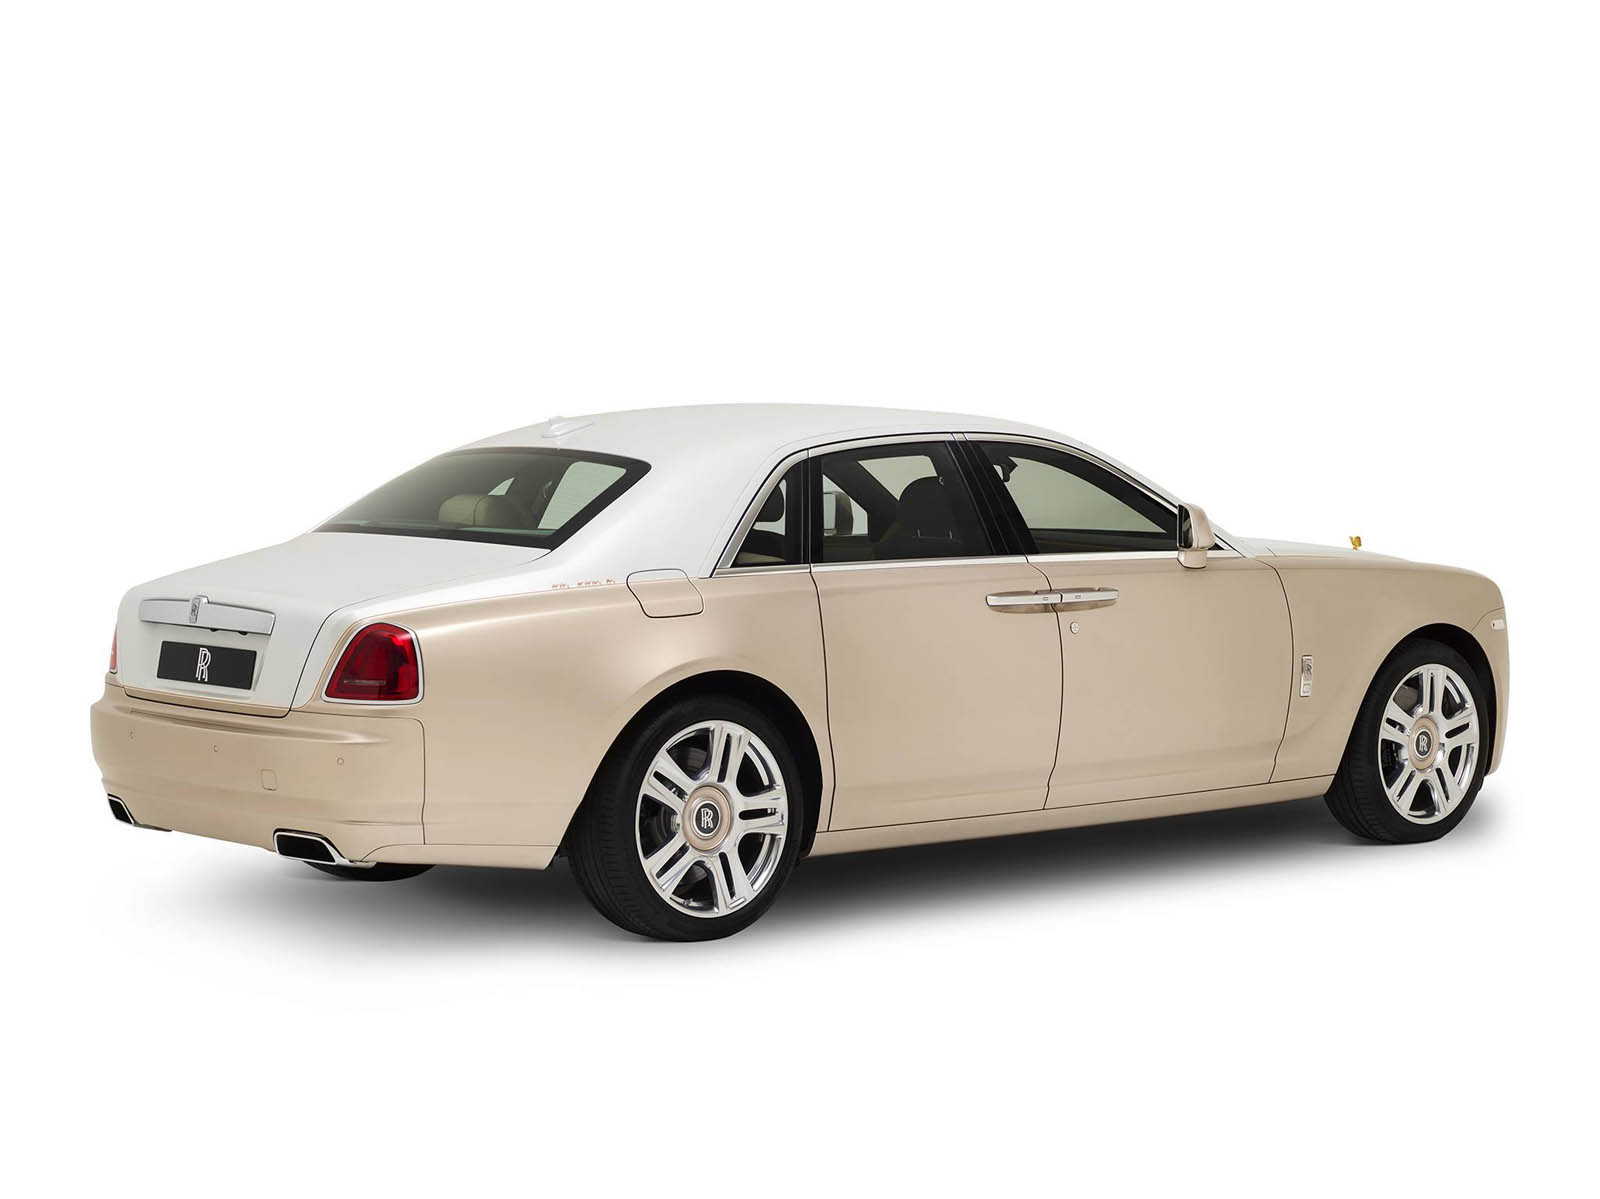 rolls-royce-Ghost-inspired-by-Ancient-Trade-Routes-10